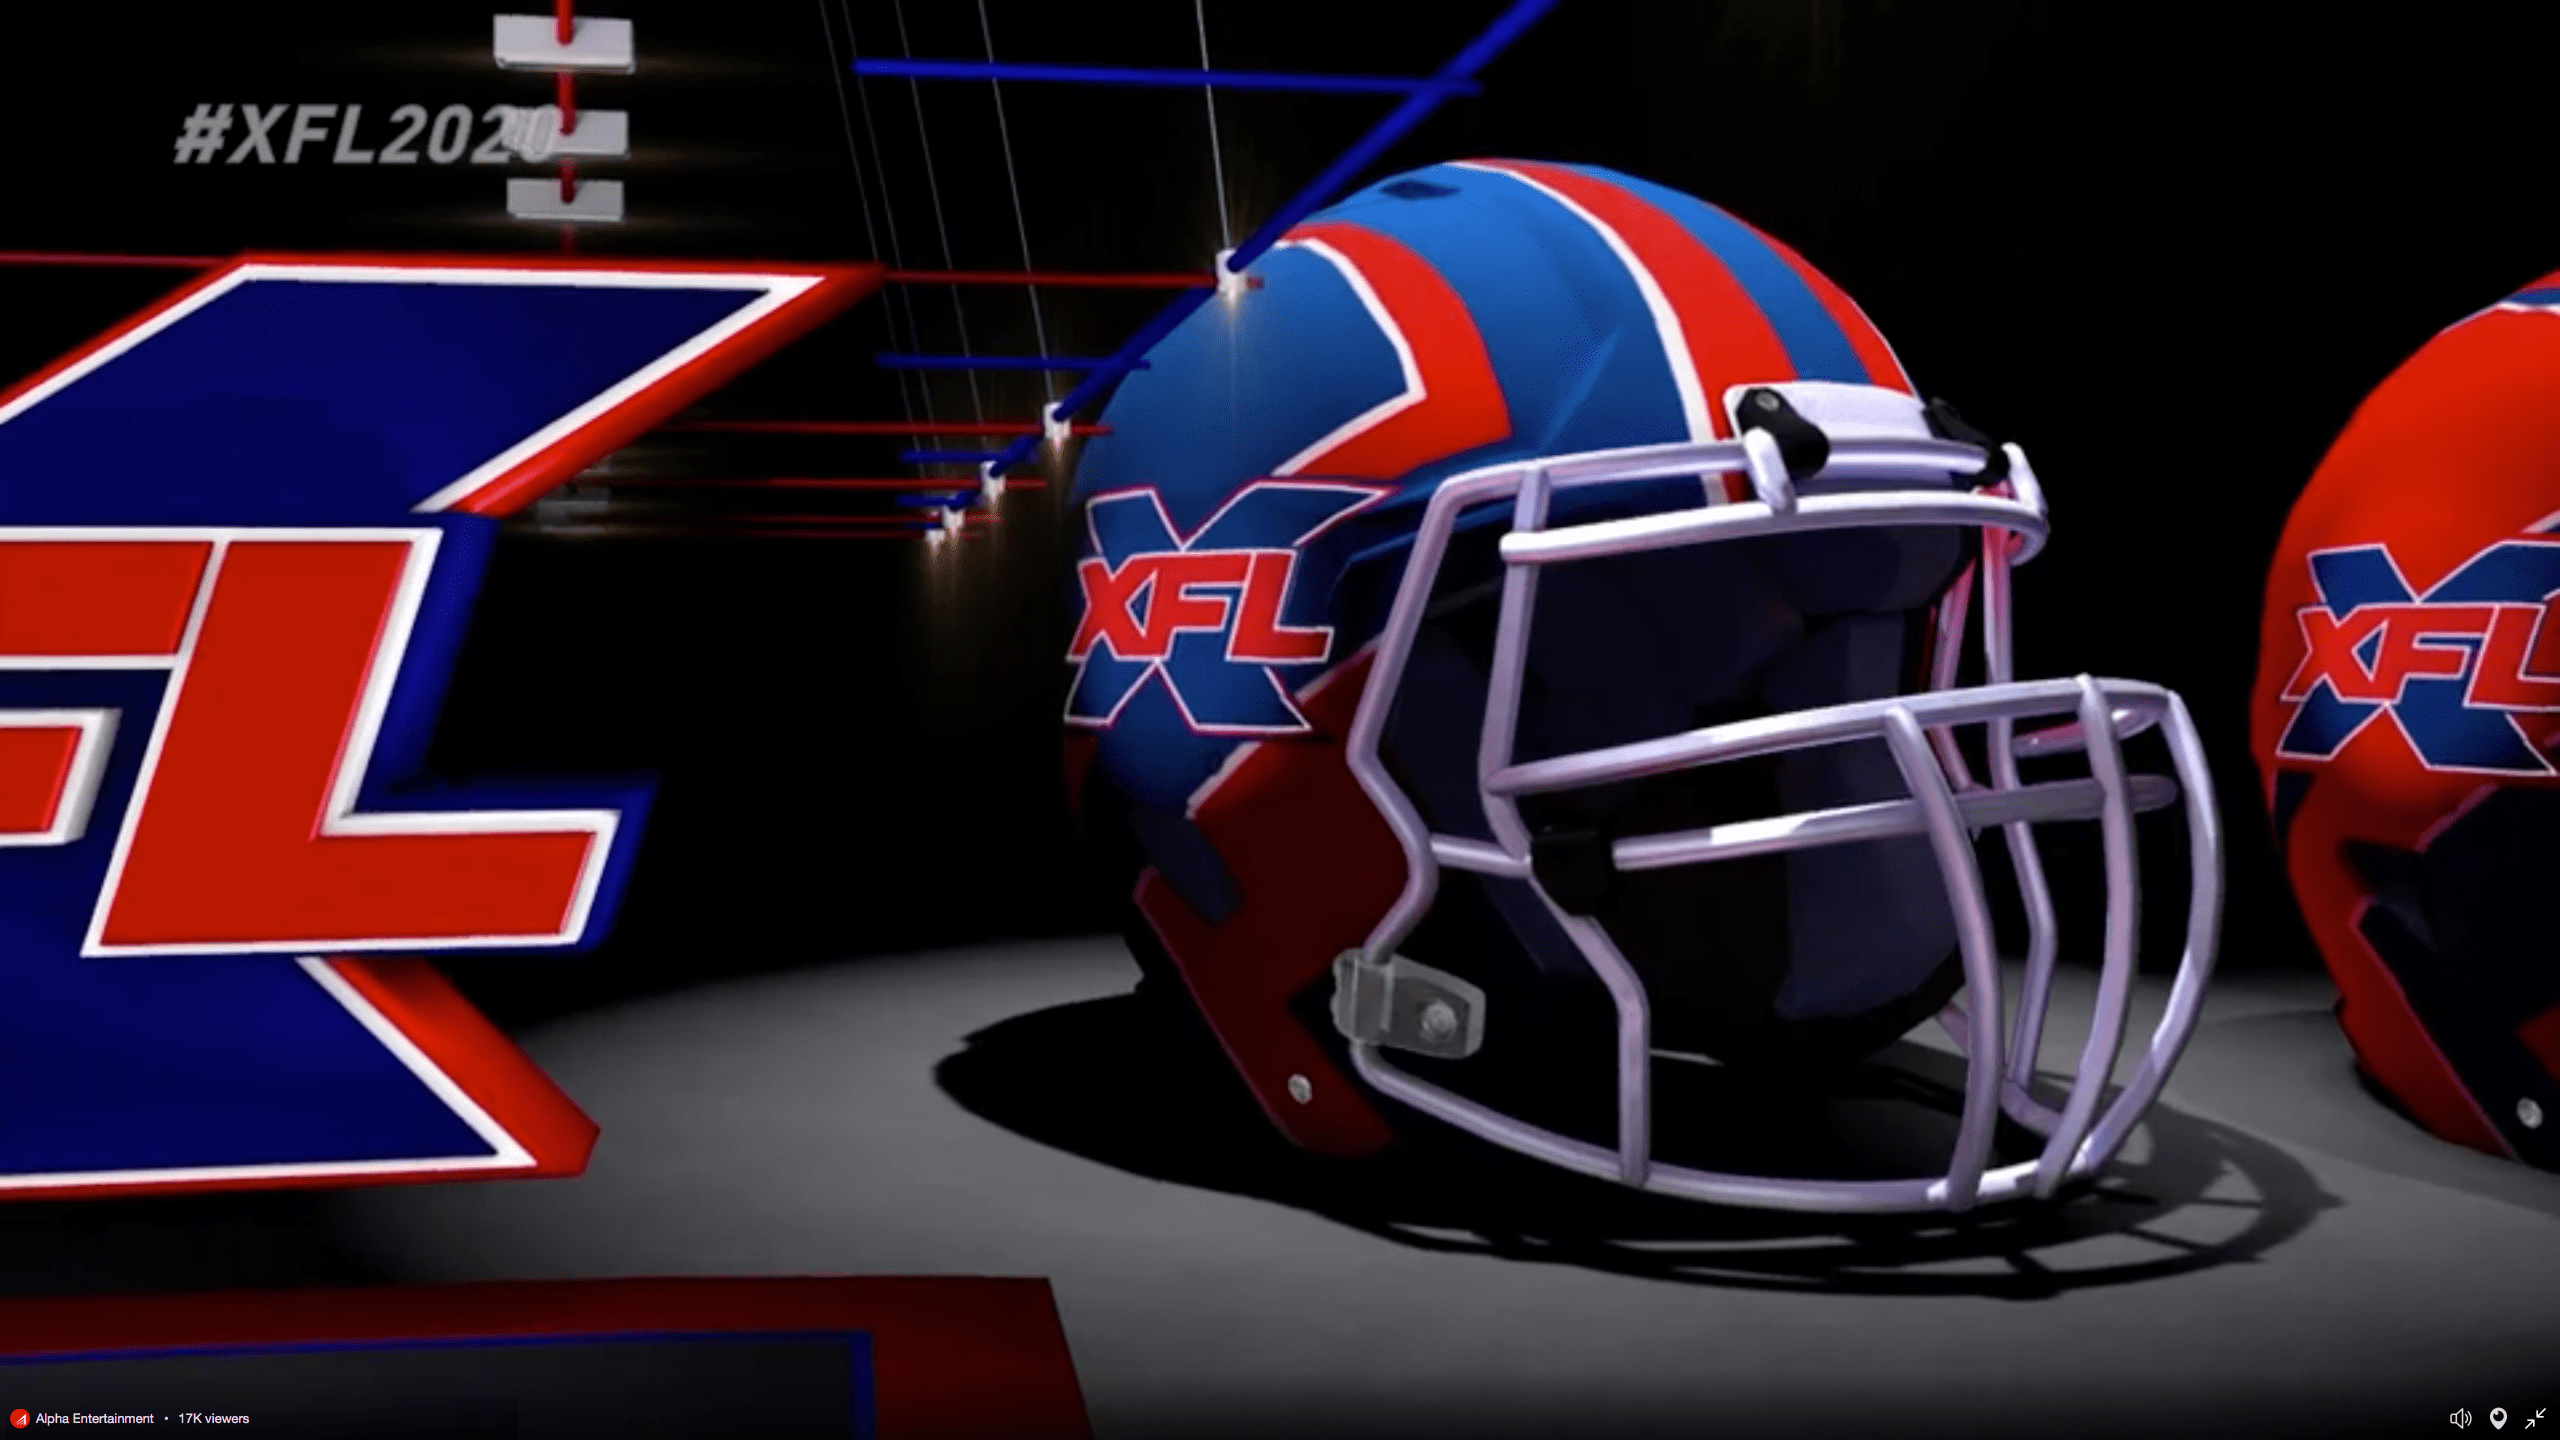 The first eight teams in the rebooted XFL's inaugural season are...